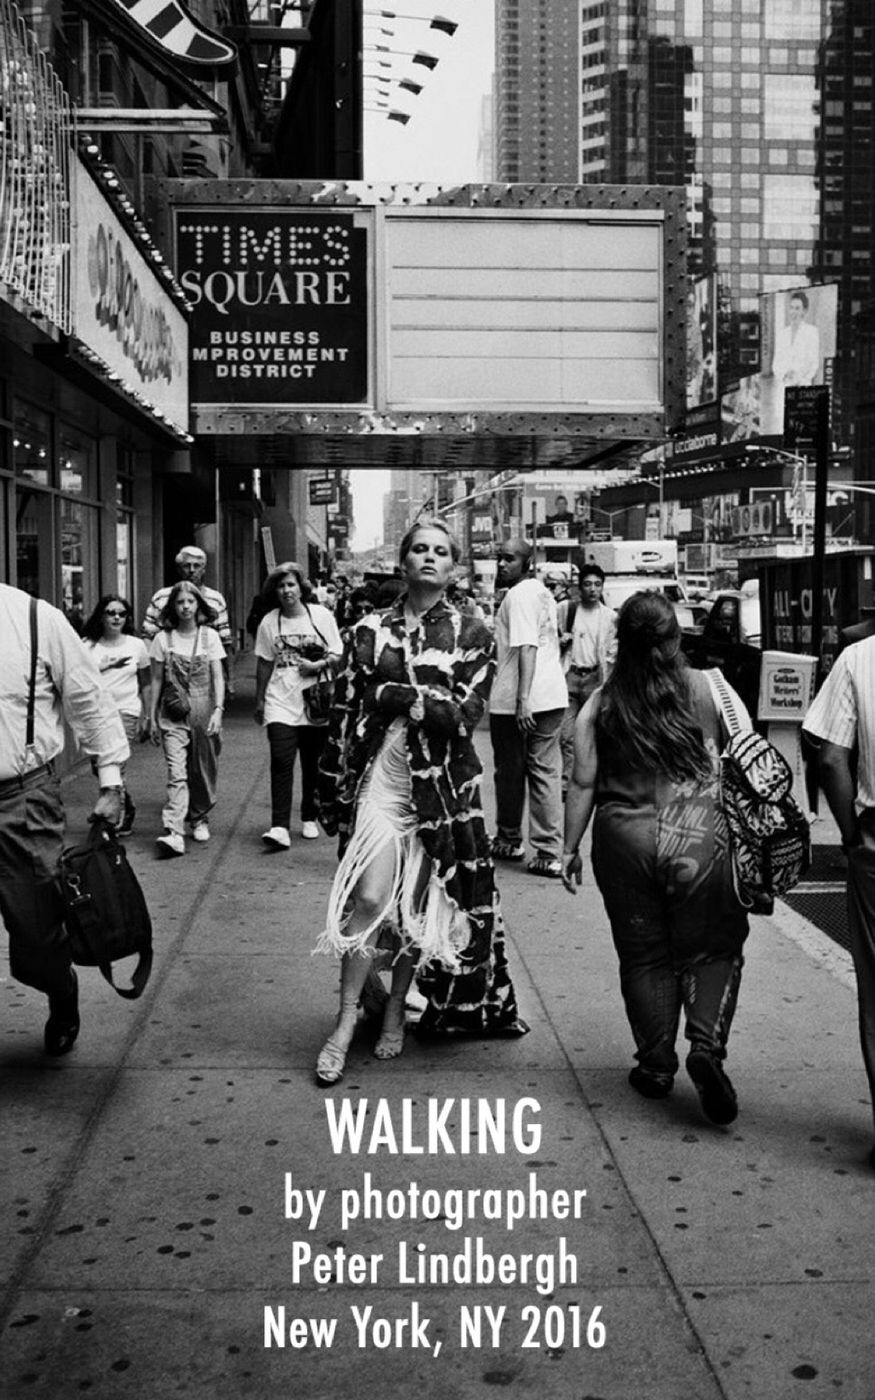 WALKING by photographer Peter Lindbergh first featured in Vogue Italia October, 2016.